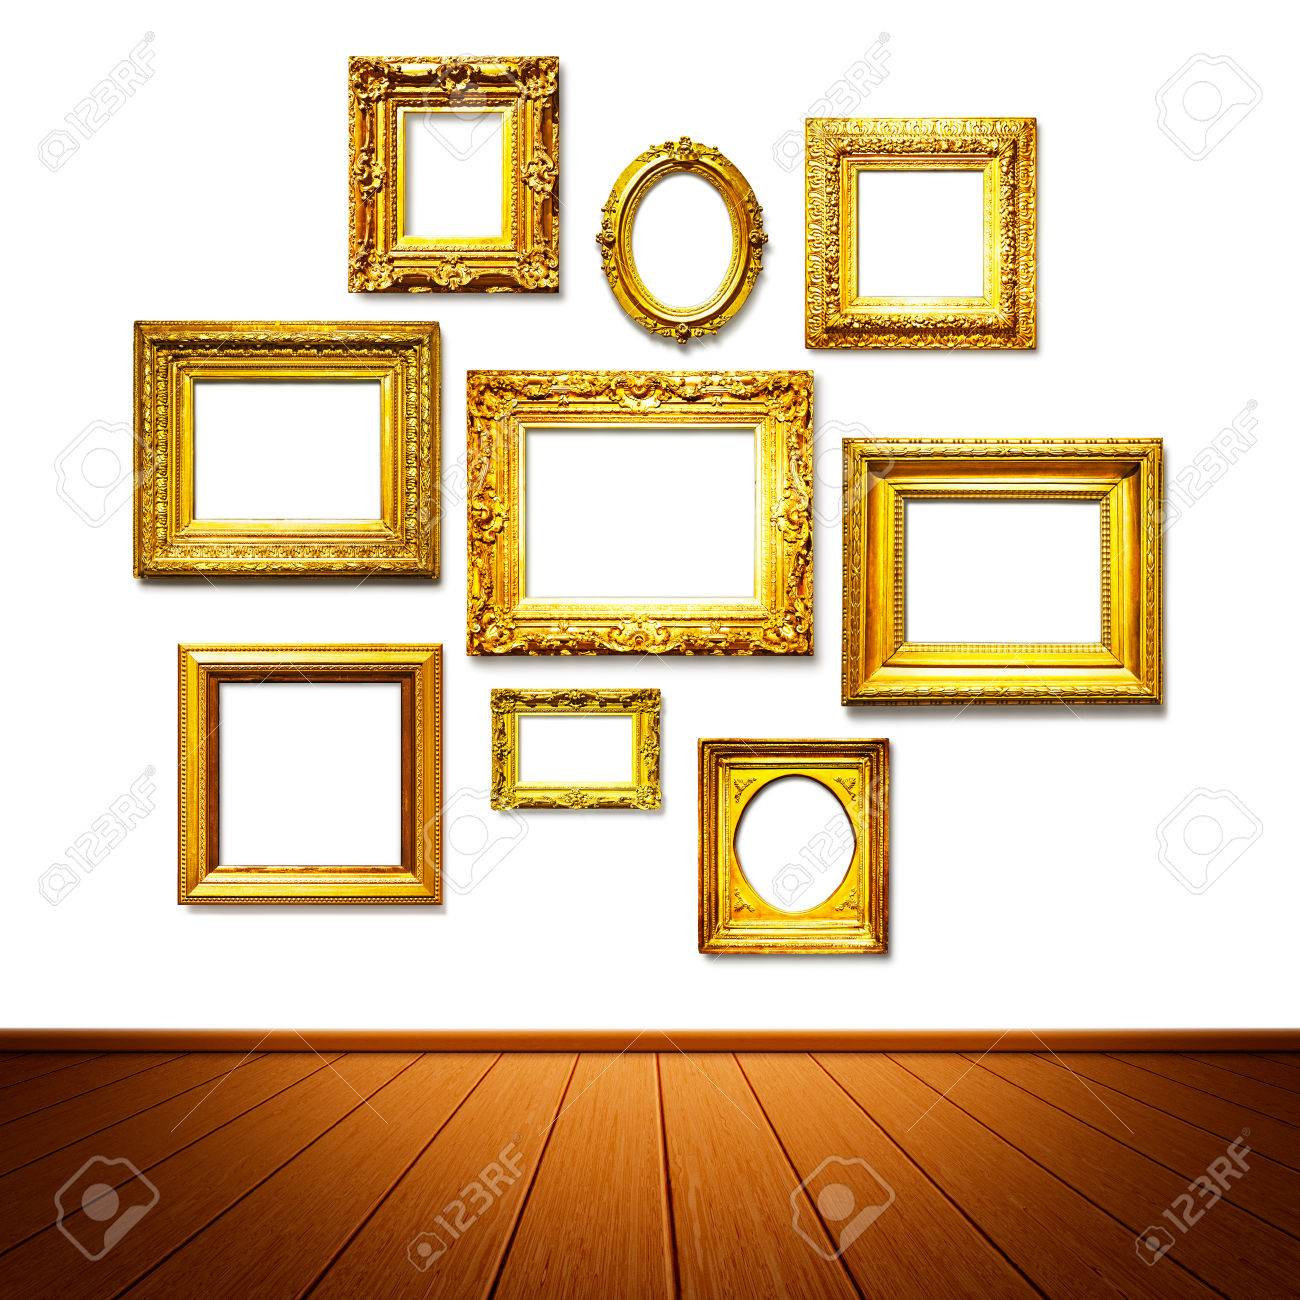 Antique golden frames on the wall. Art gallery. Objects group on white background Stock  sc 1 st  123RF.com & Antique Golden Frames On The Wall. Art Gallery. Objects Group ...